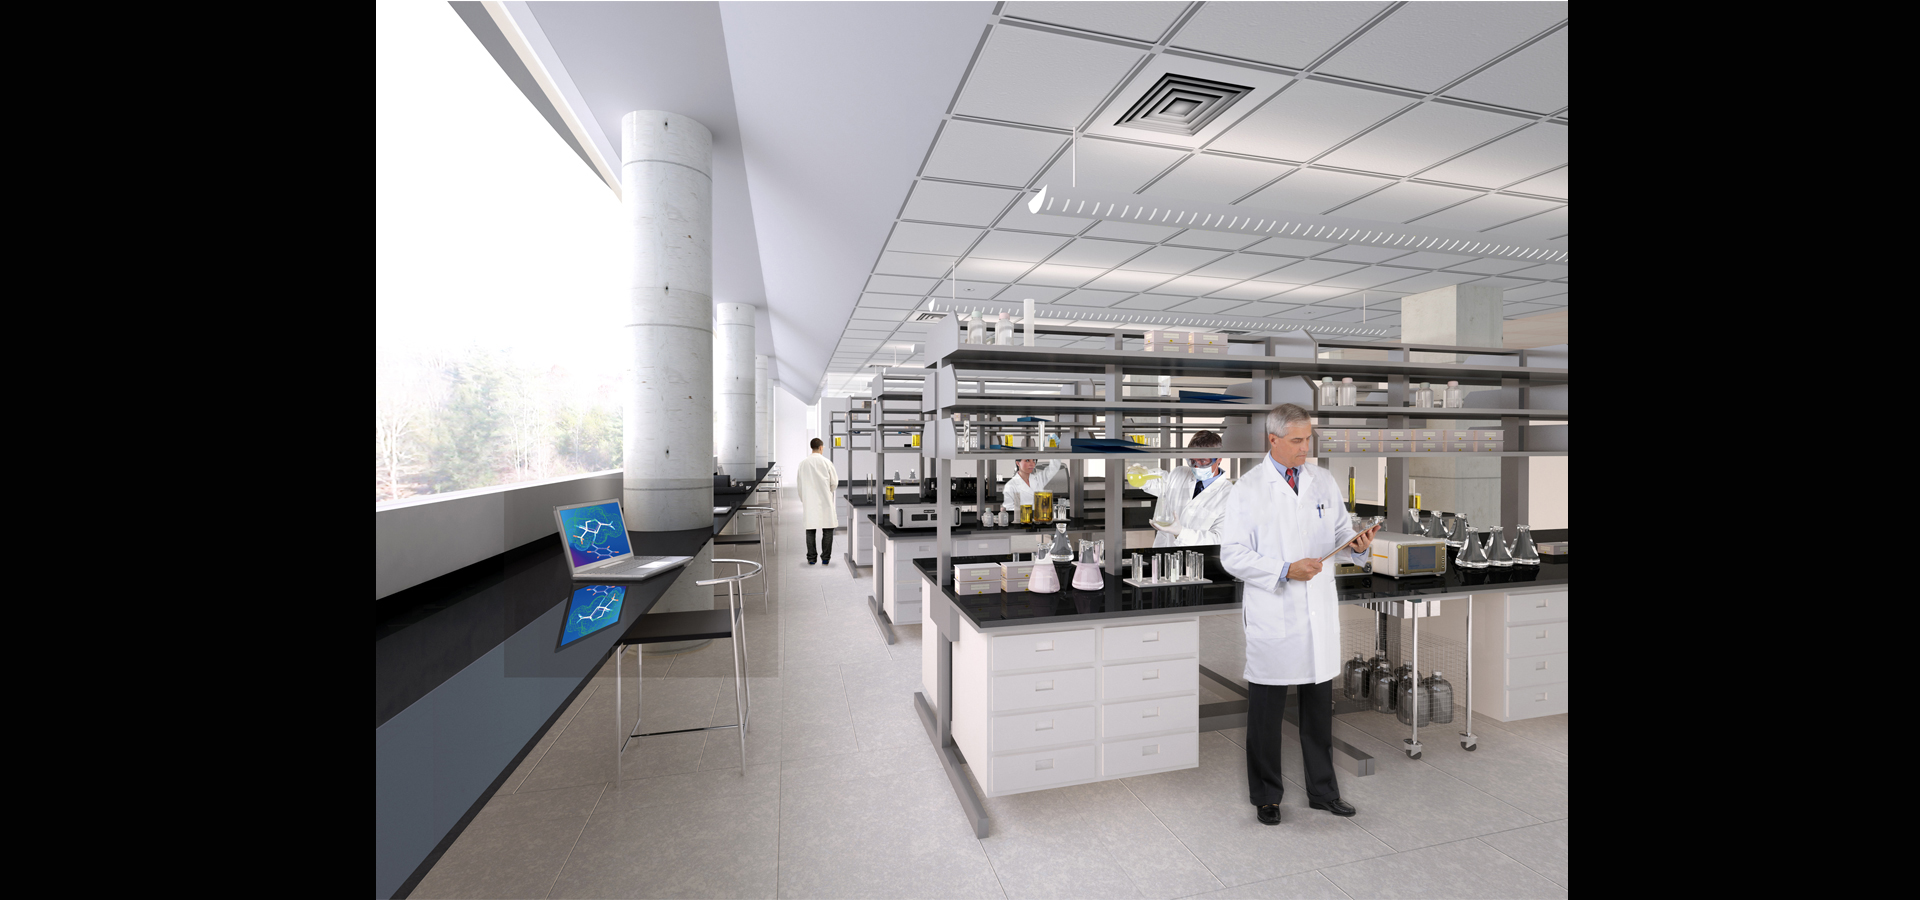 biocon project 1, biocon biologics india limited, 20th k m, hosur road,electronic city,  bangalore 560100  and development in biotechnology project.